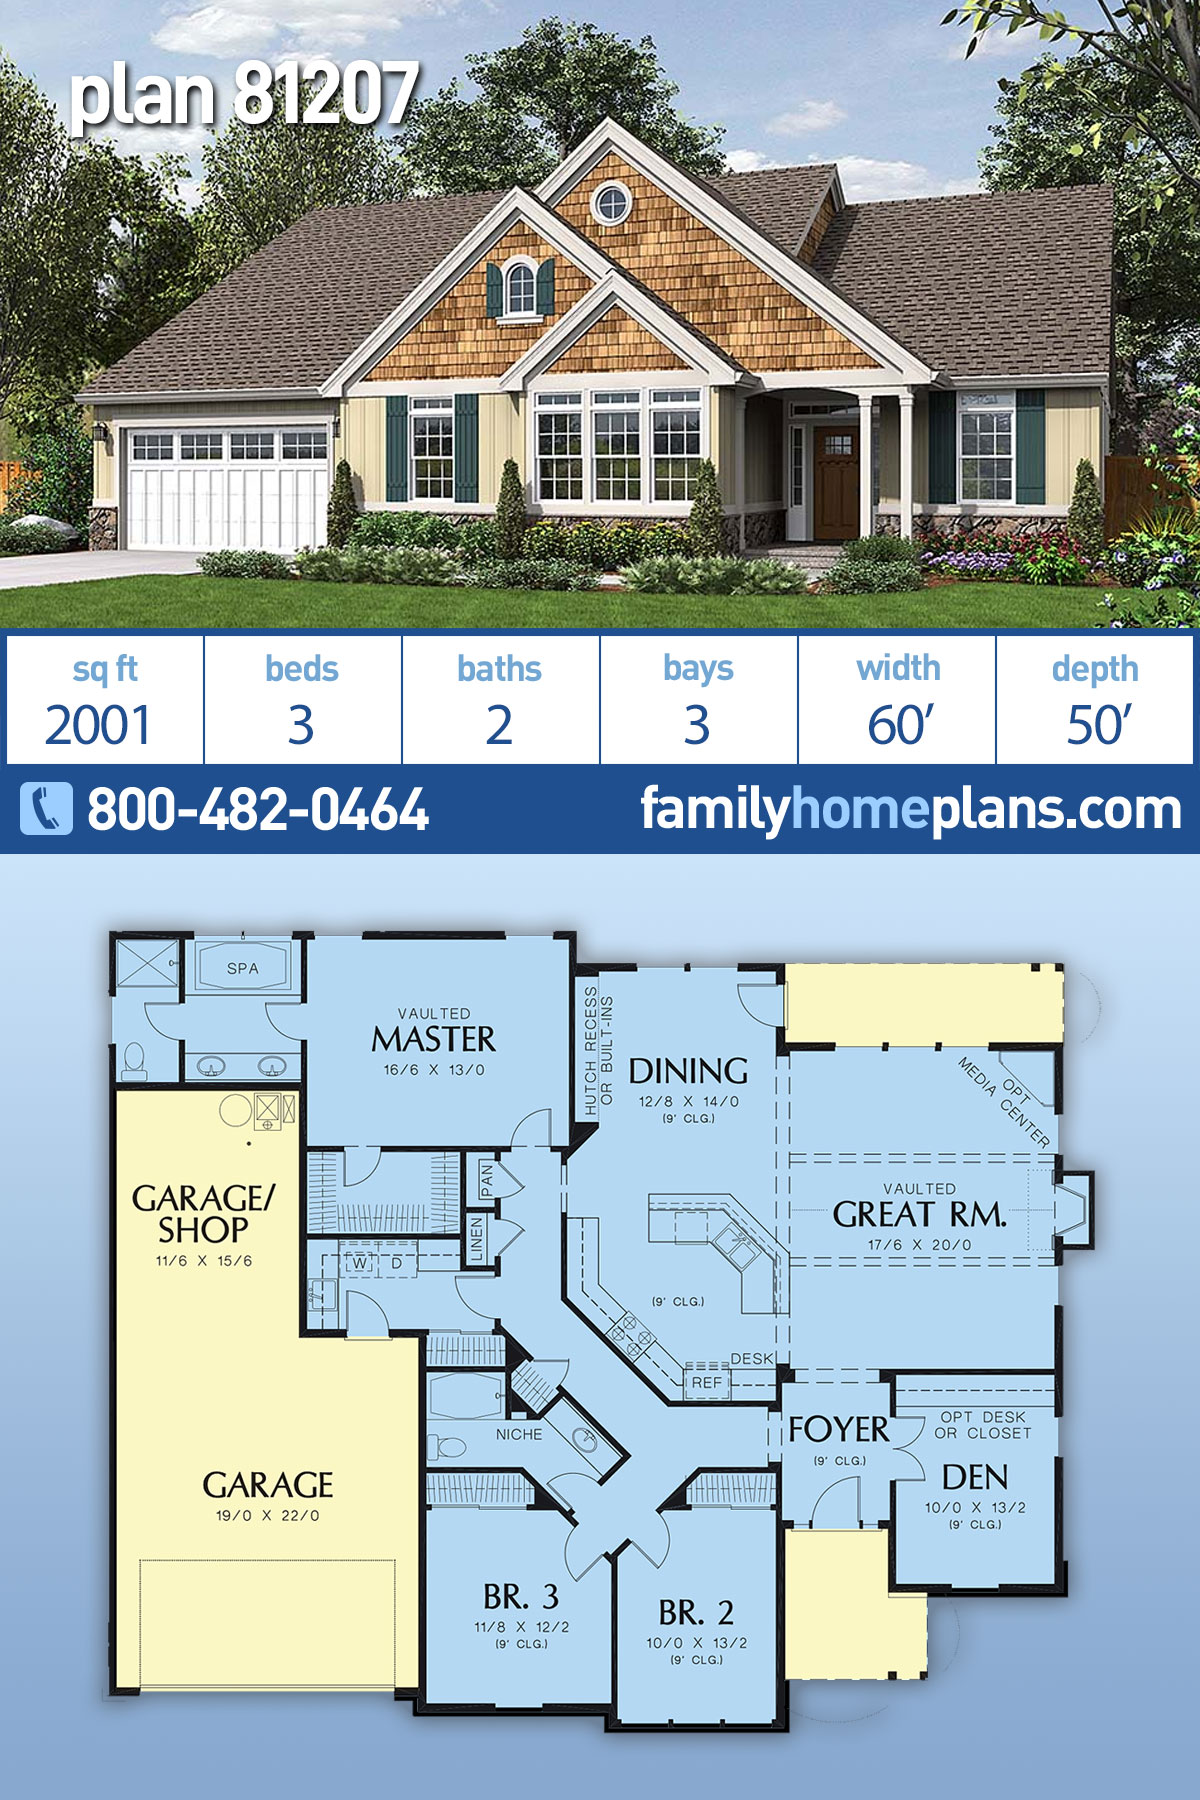 Cottage, Country House Plan 81207 with 3 Beds, 2 Baths, 3 Car Garage